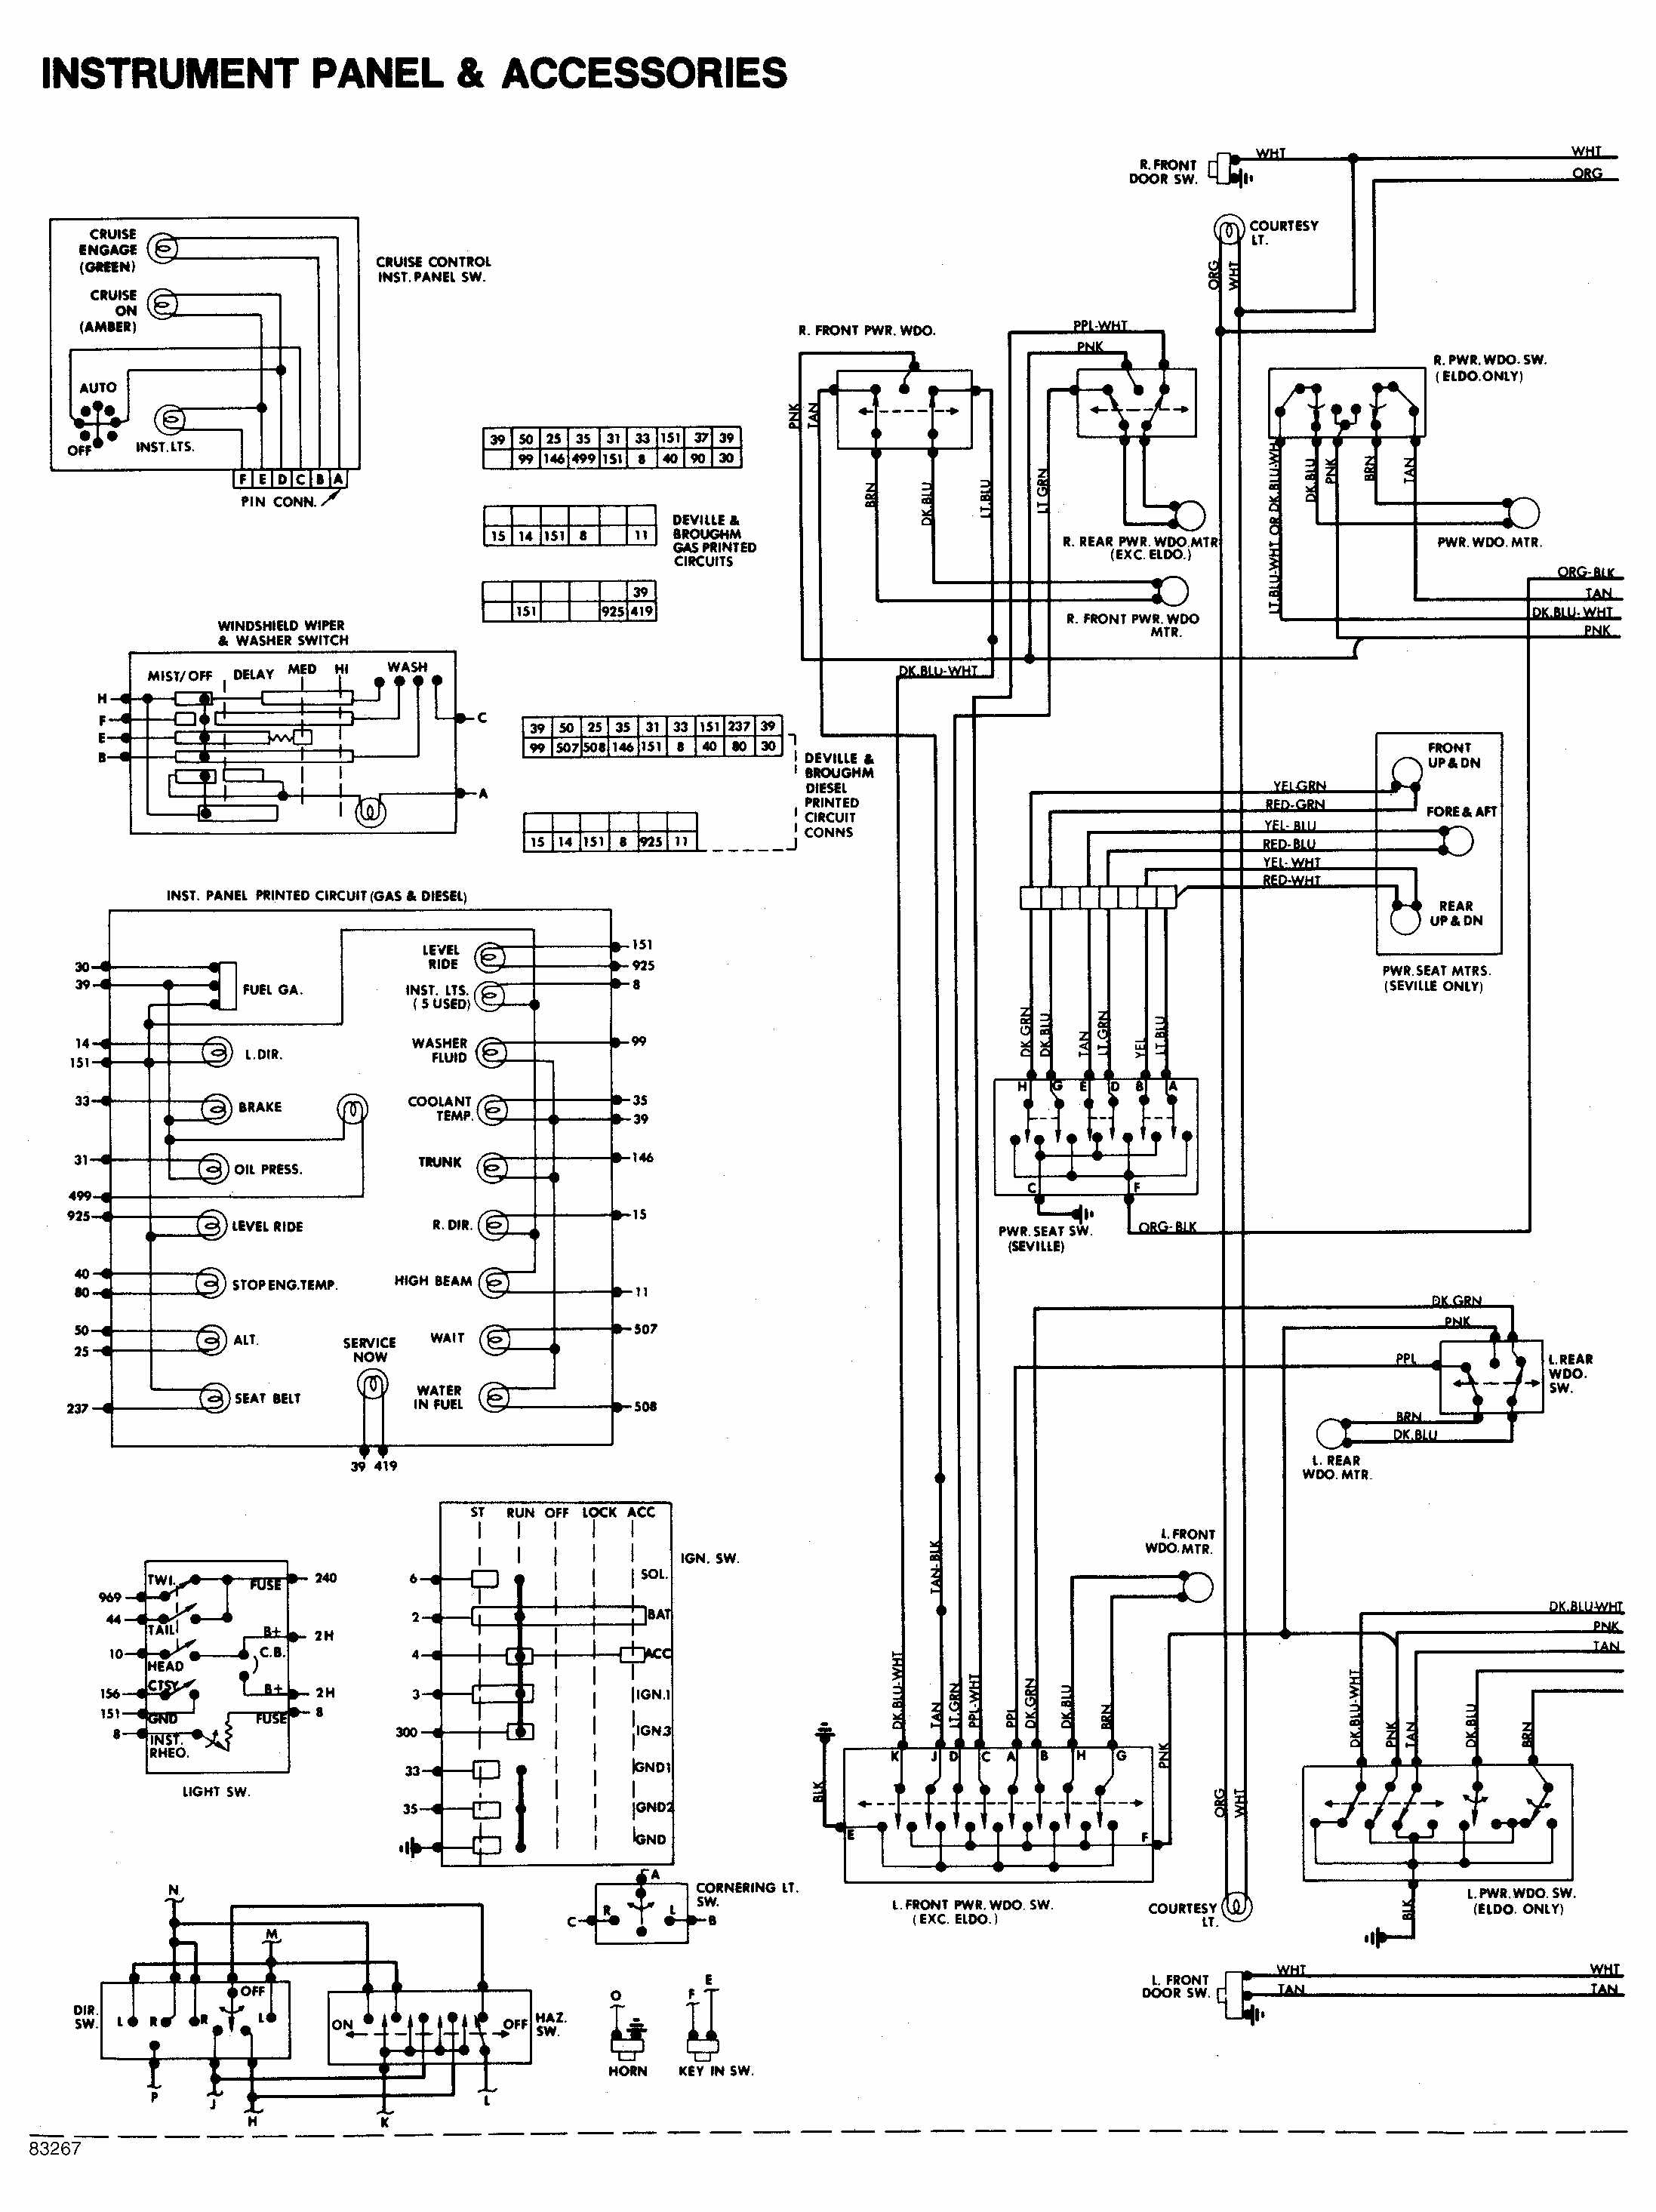 1974 Amc Wiring Diagram Library Msd For 77 Hornet Amx The Forum Harness 1984 Cadillac Deville Instrument Panel And Accessories Drawing A